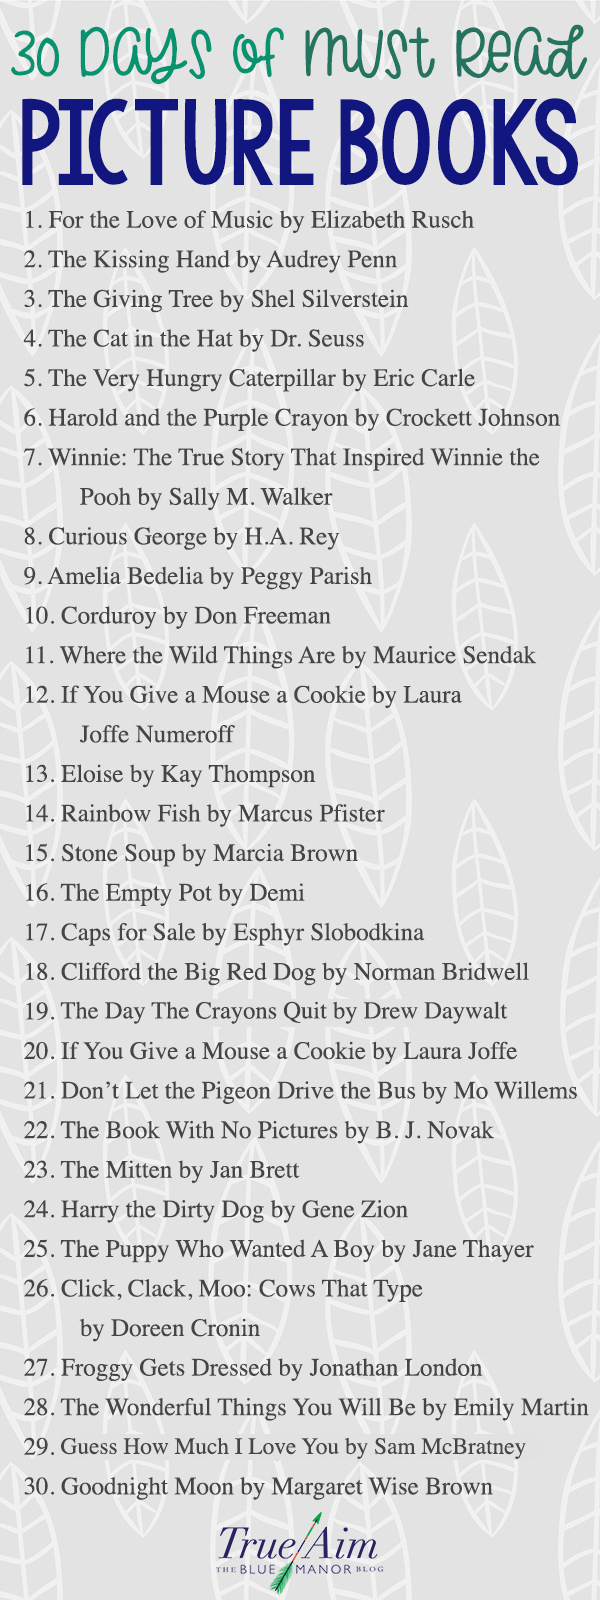 Get some summer reading in with this countdown of 30 days of classic must-read picture books! They are great for read alouds, story time, or family time!